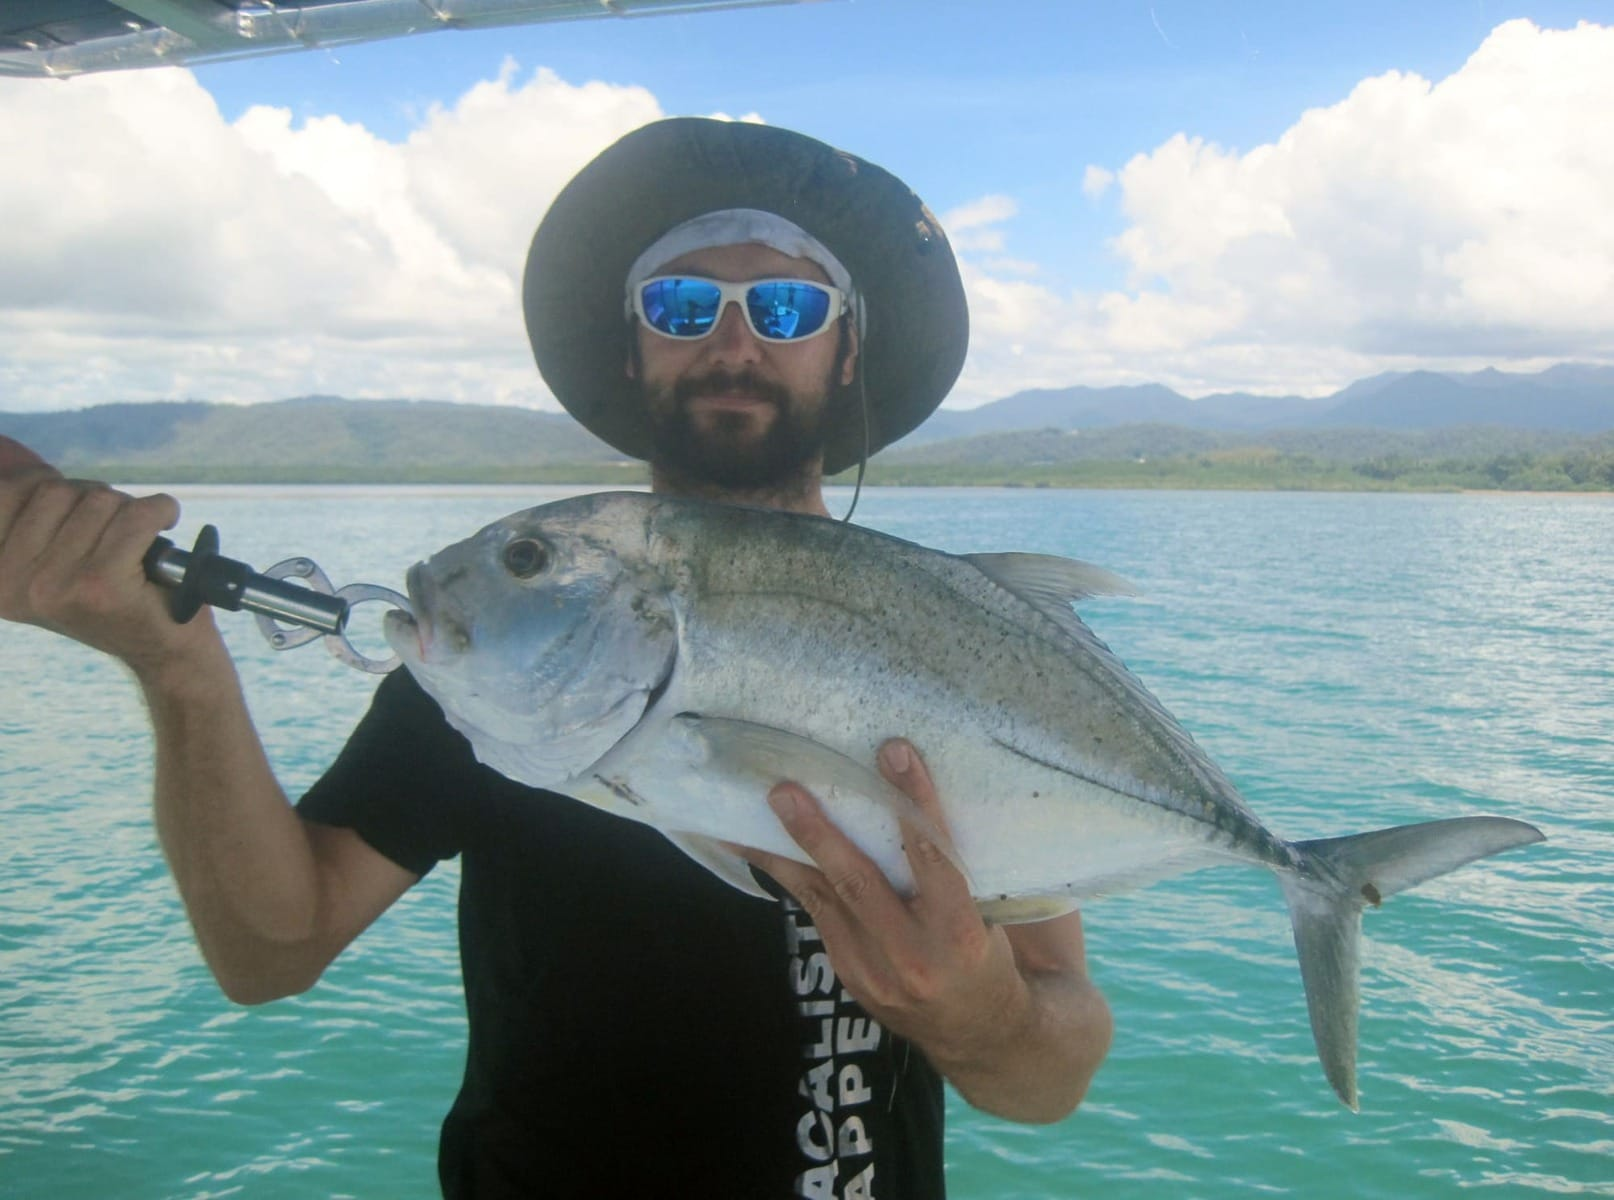 hookup fishing The boyne tannum hookup is australia's top family fishing competition which is held annual with the aim of bringing together friends and family from all parts of australia.